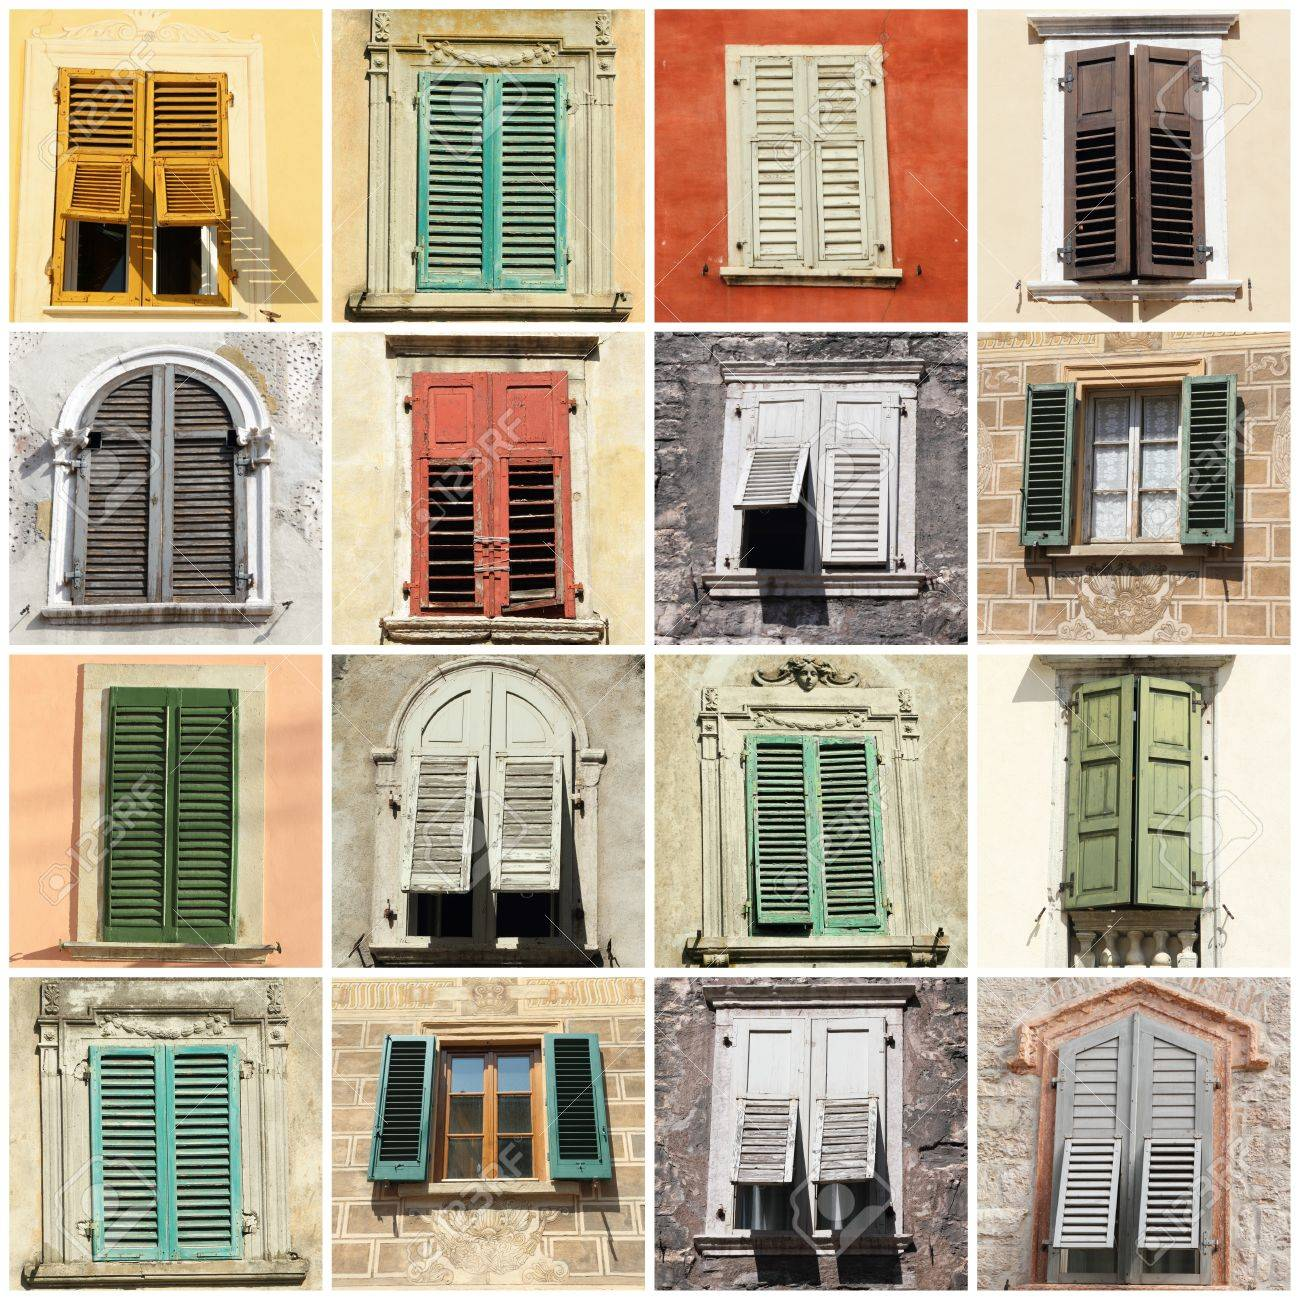 Antique Windows Collage With Antique Windows With Shutters In Italy Europe Stock